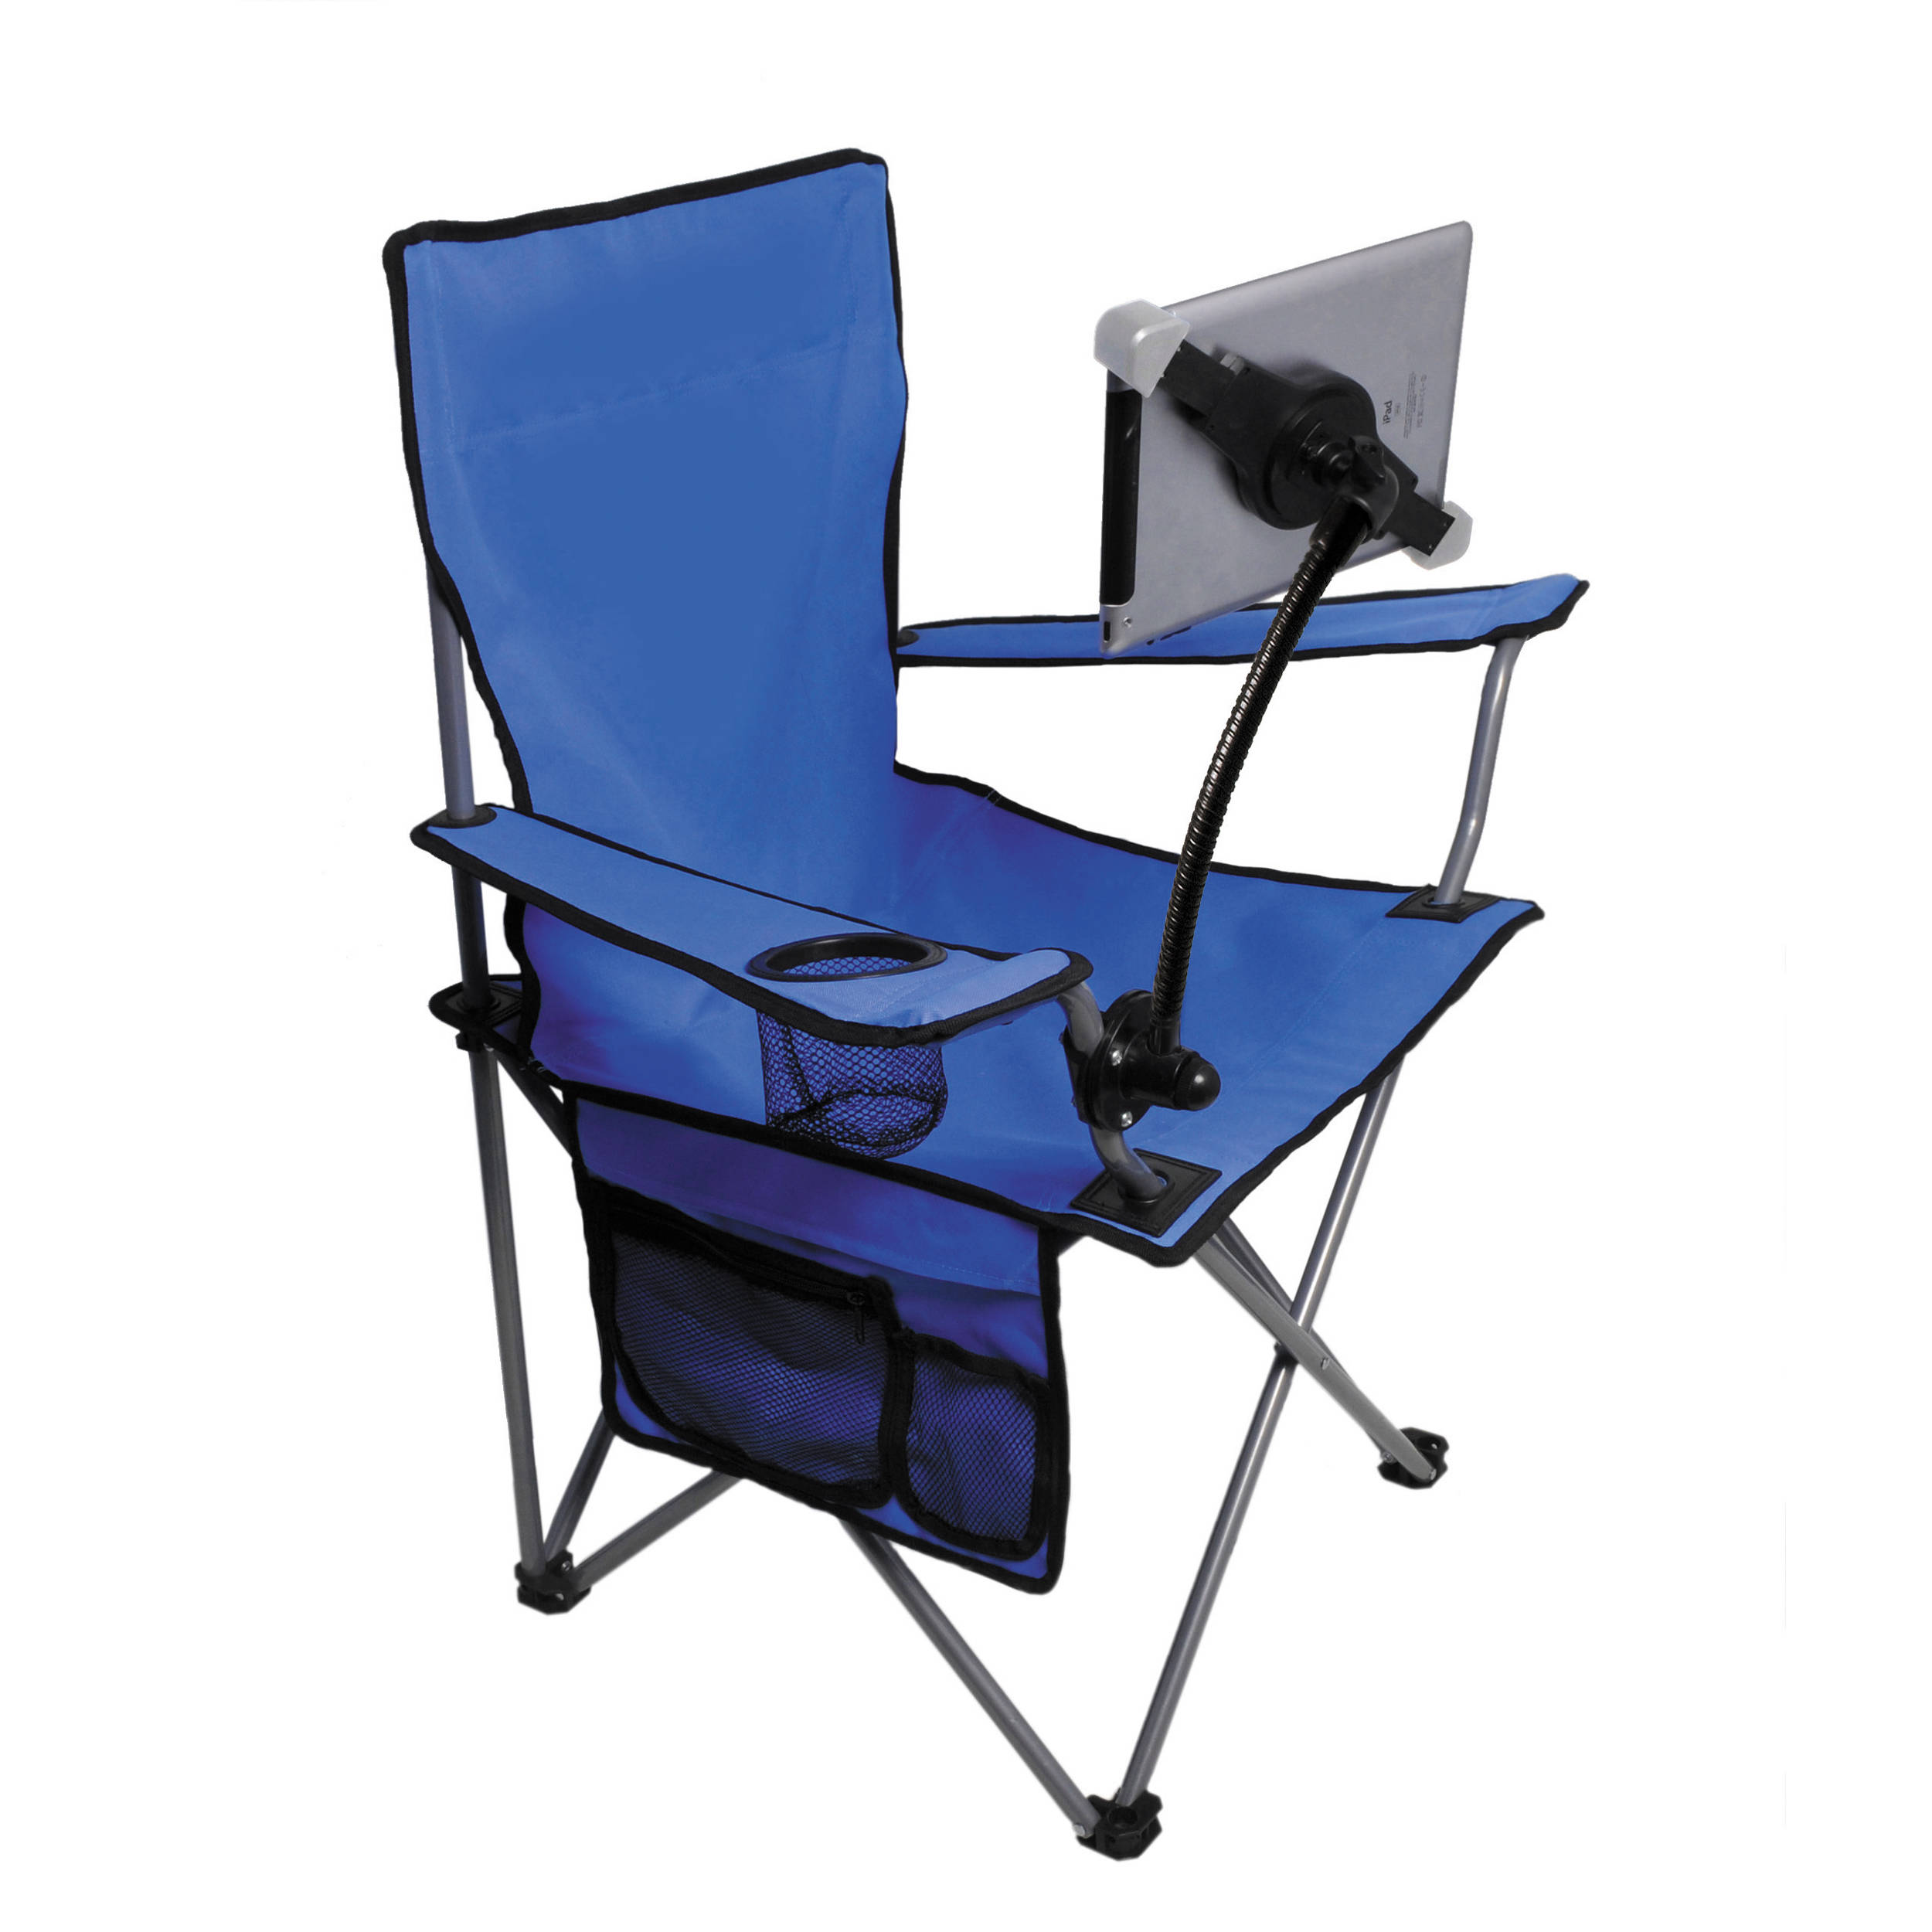 Cta Digital Folding Lawn Chair With Adjustable Universal Tablet Stand For Ipad Tablet